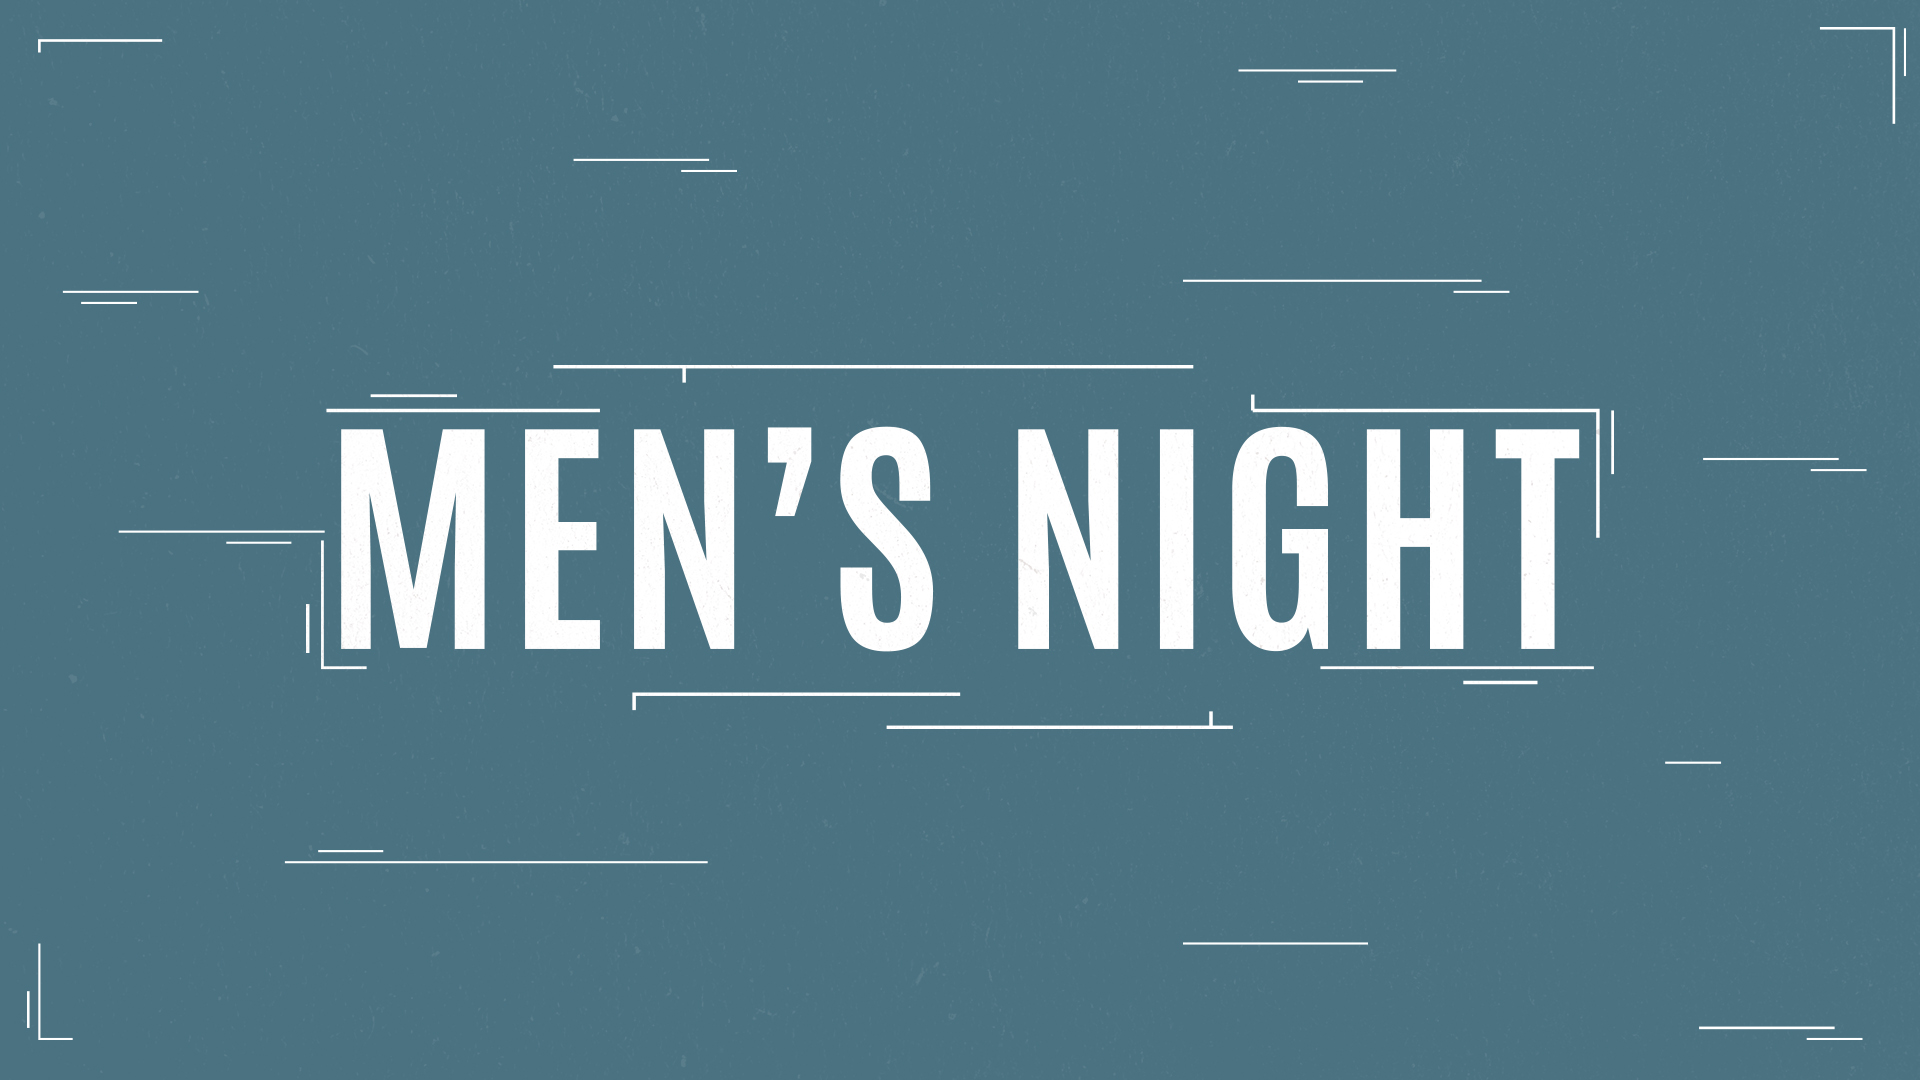 Men s night no date